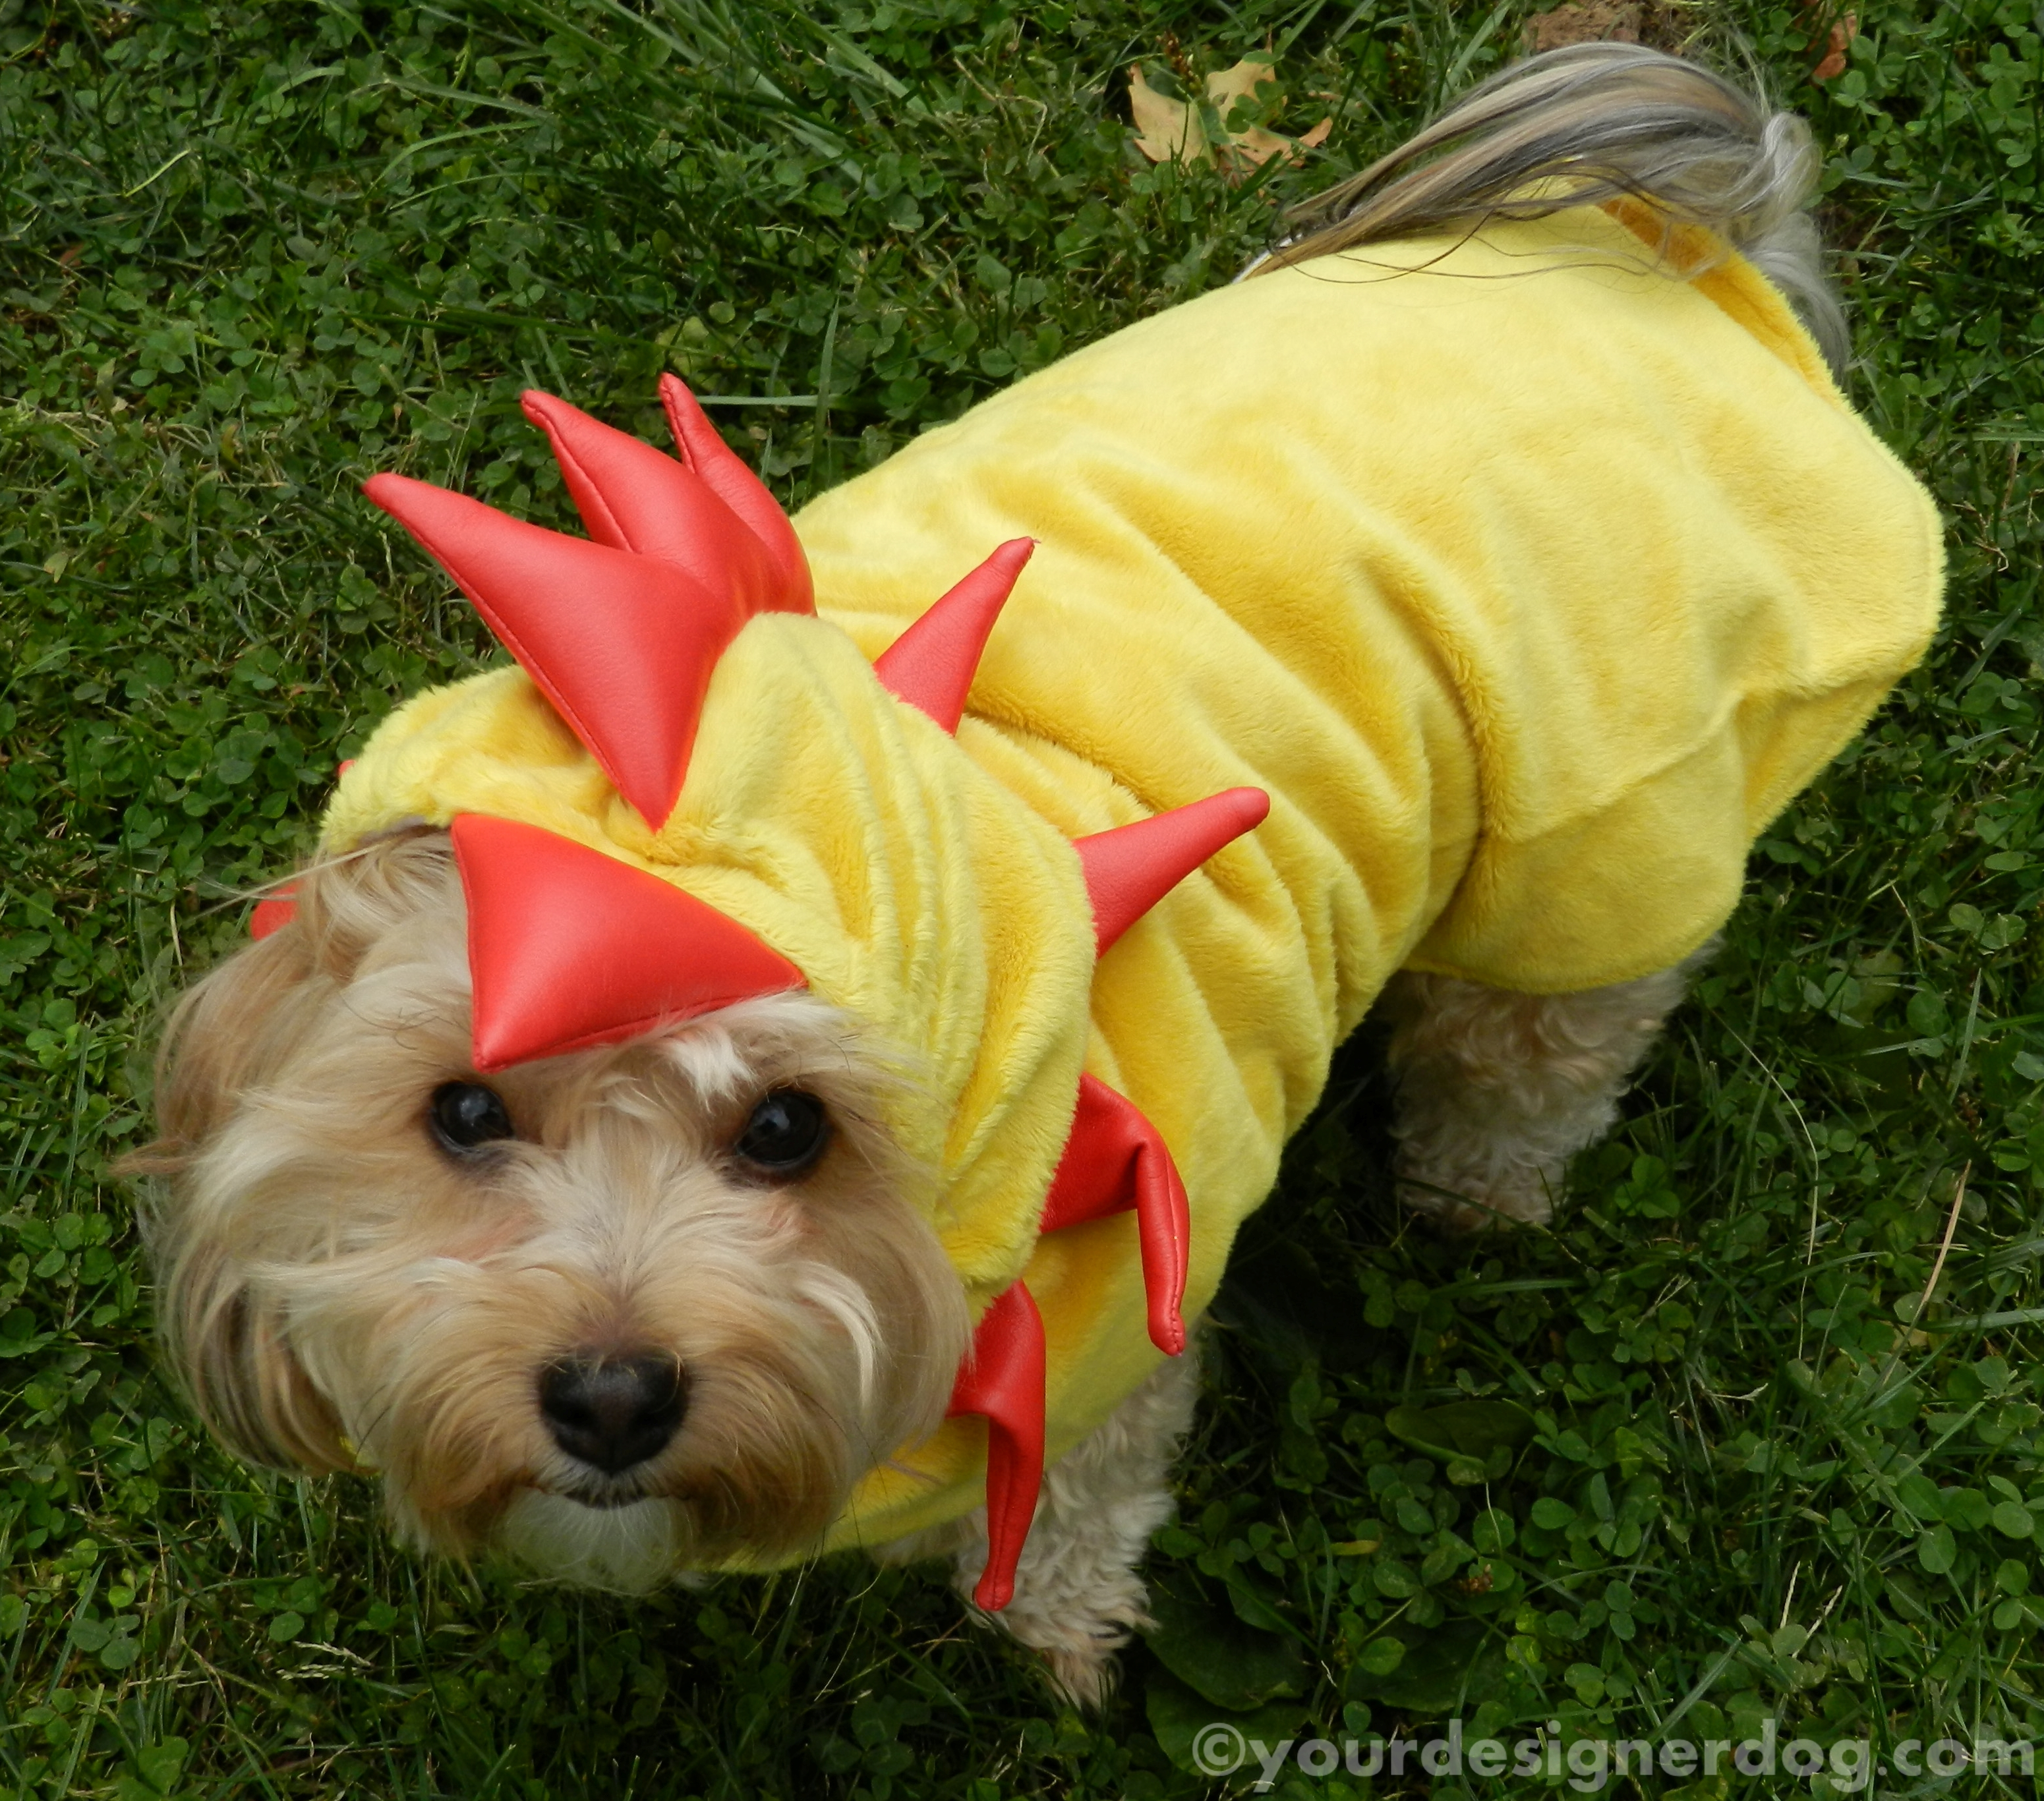 dogs, designer dogs, yorkipoo, yorkie poo, dog costume, chicken costume